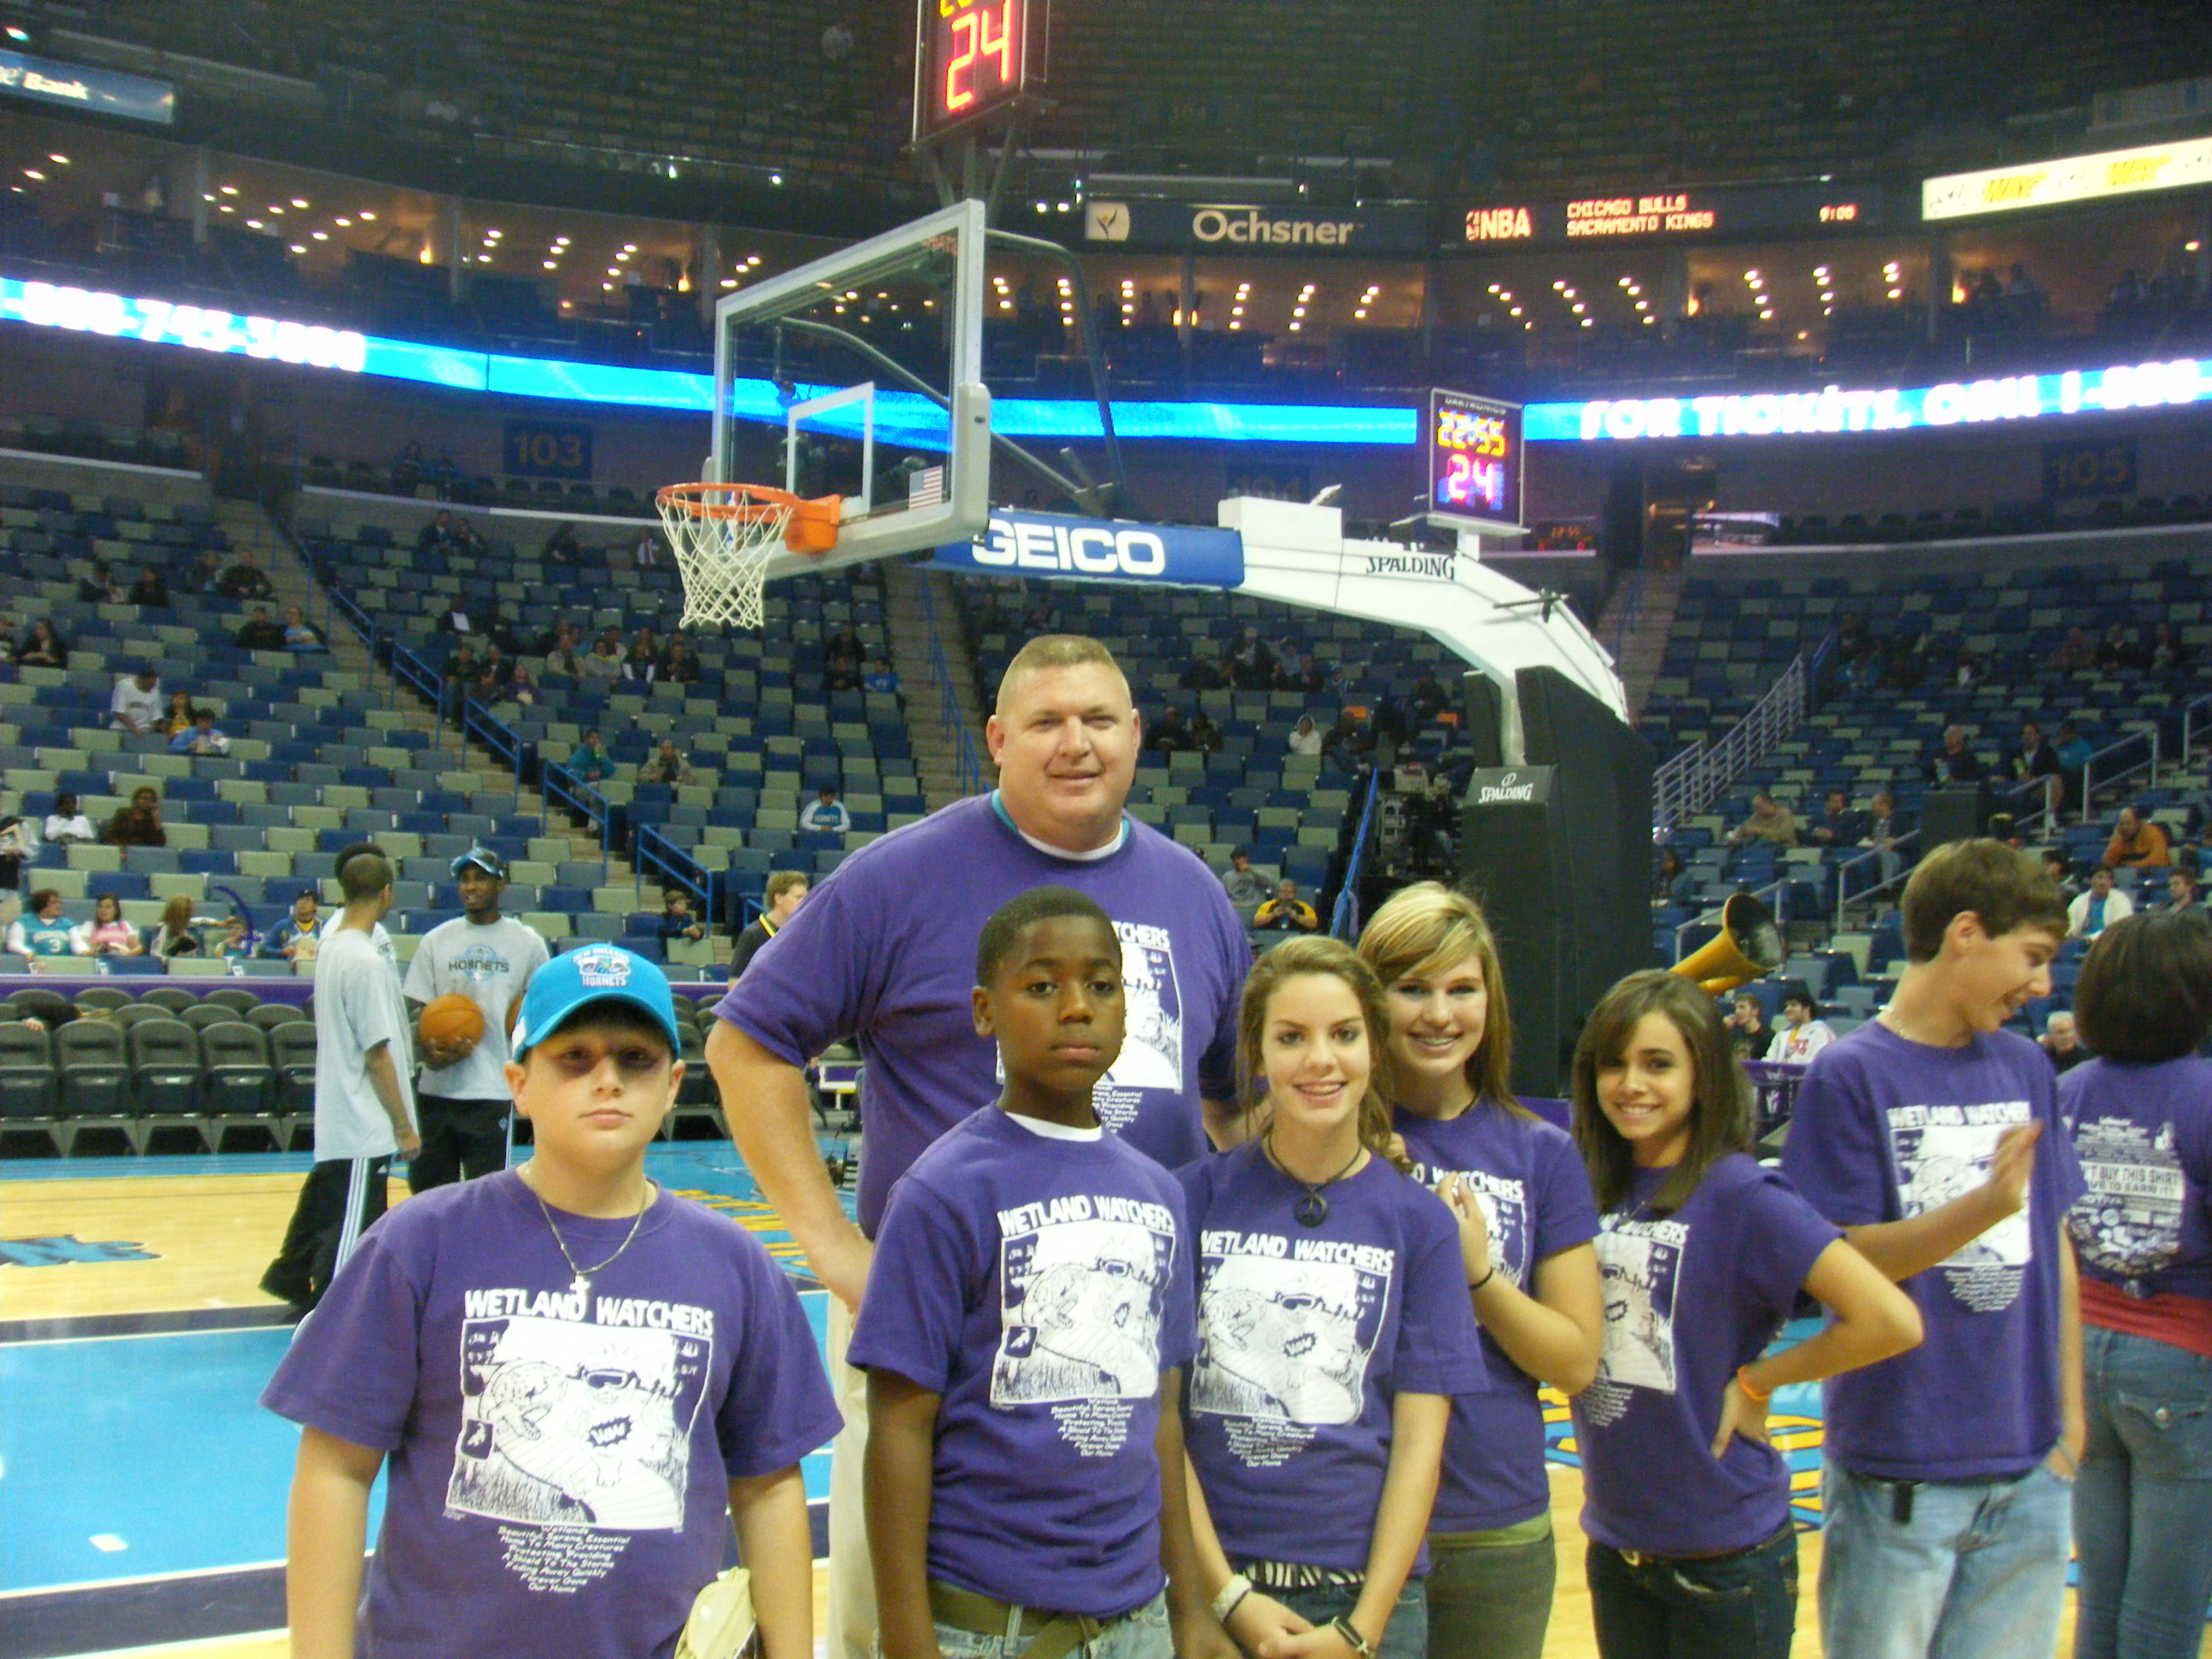 NBA Hornets Save The Wetlands Night at the Hive!